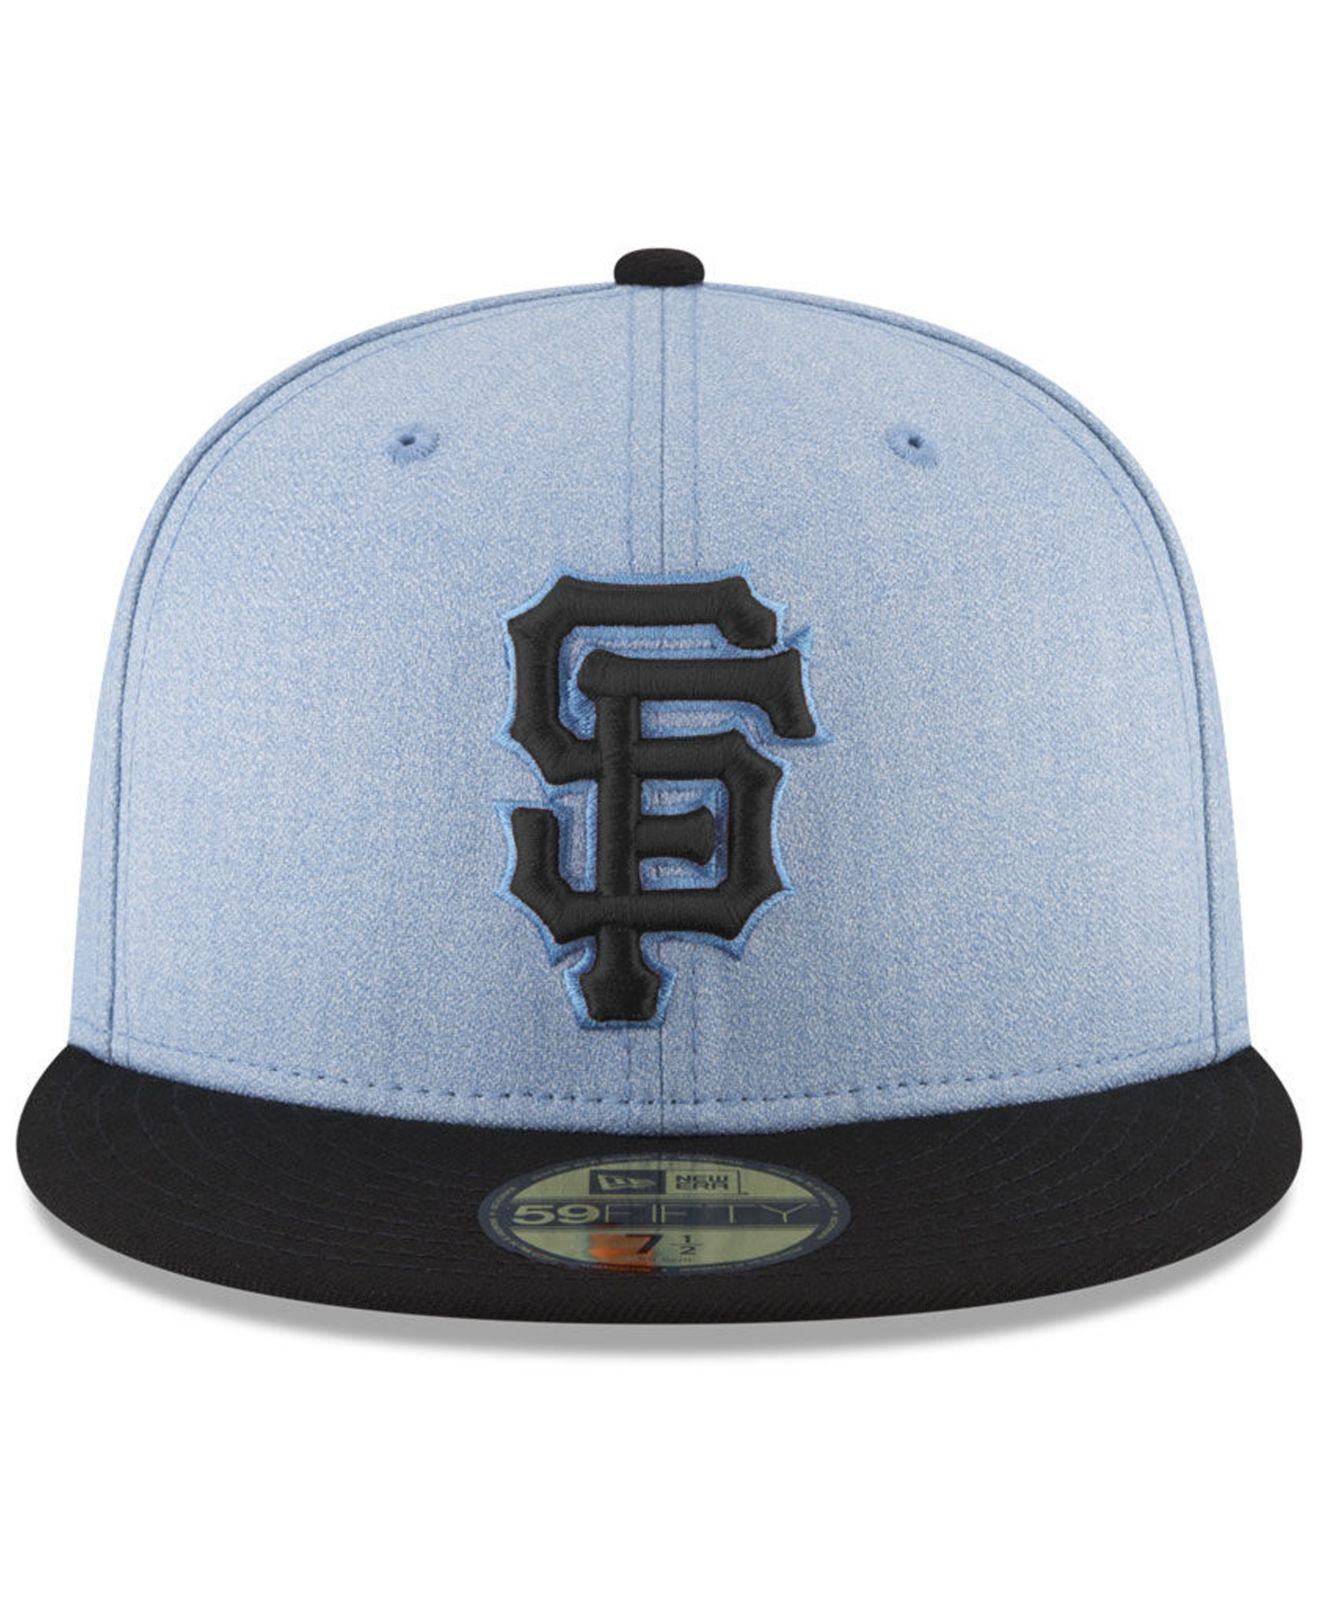 finest selection e9eaa 76699 ... ebay lyst ktz san francisco giants fathers day 59fifty fitted cap 2018  in blue for men